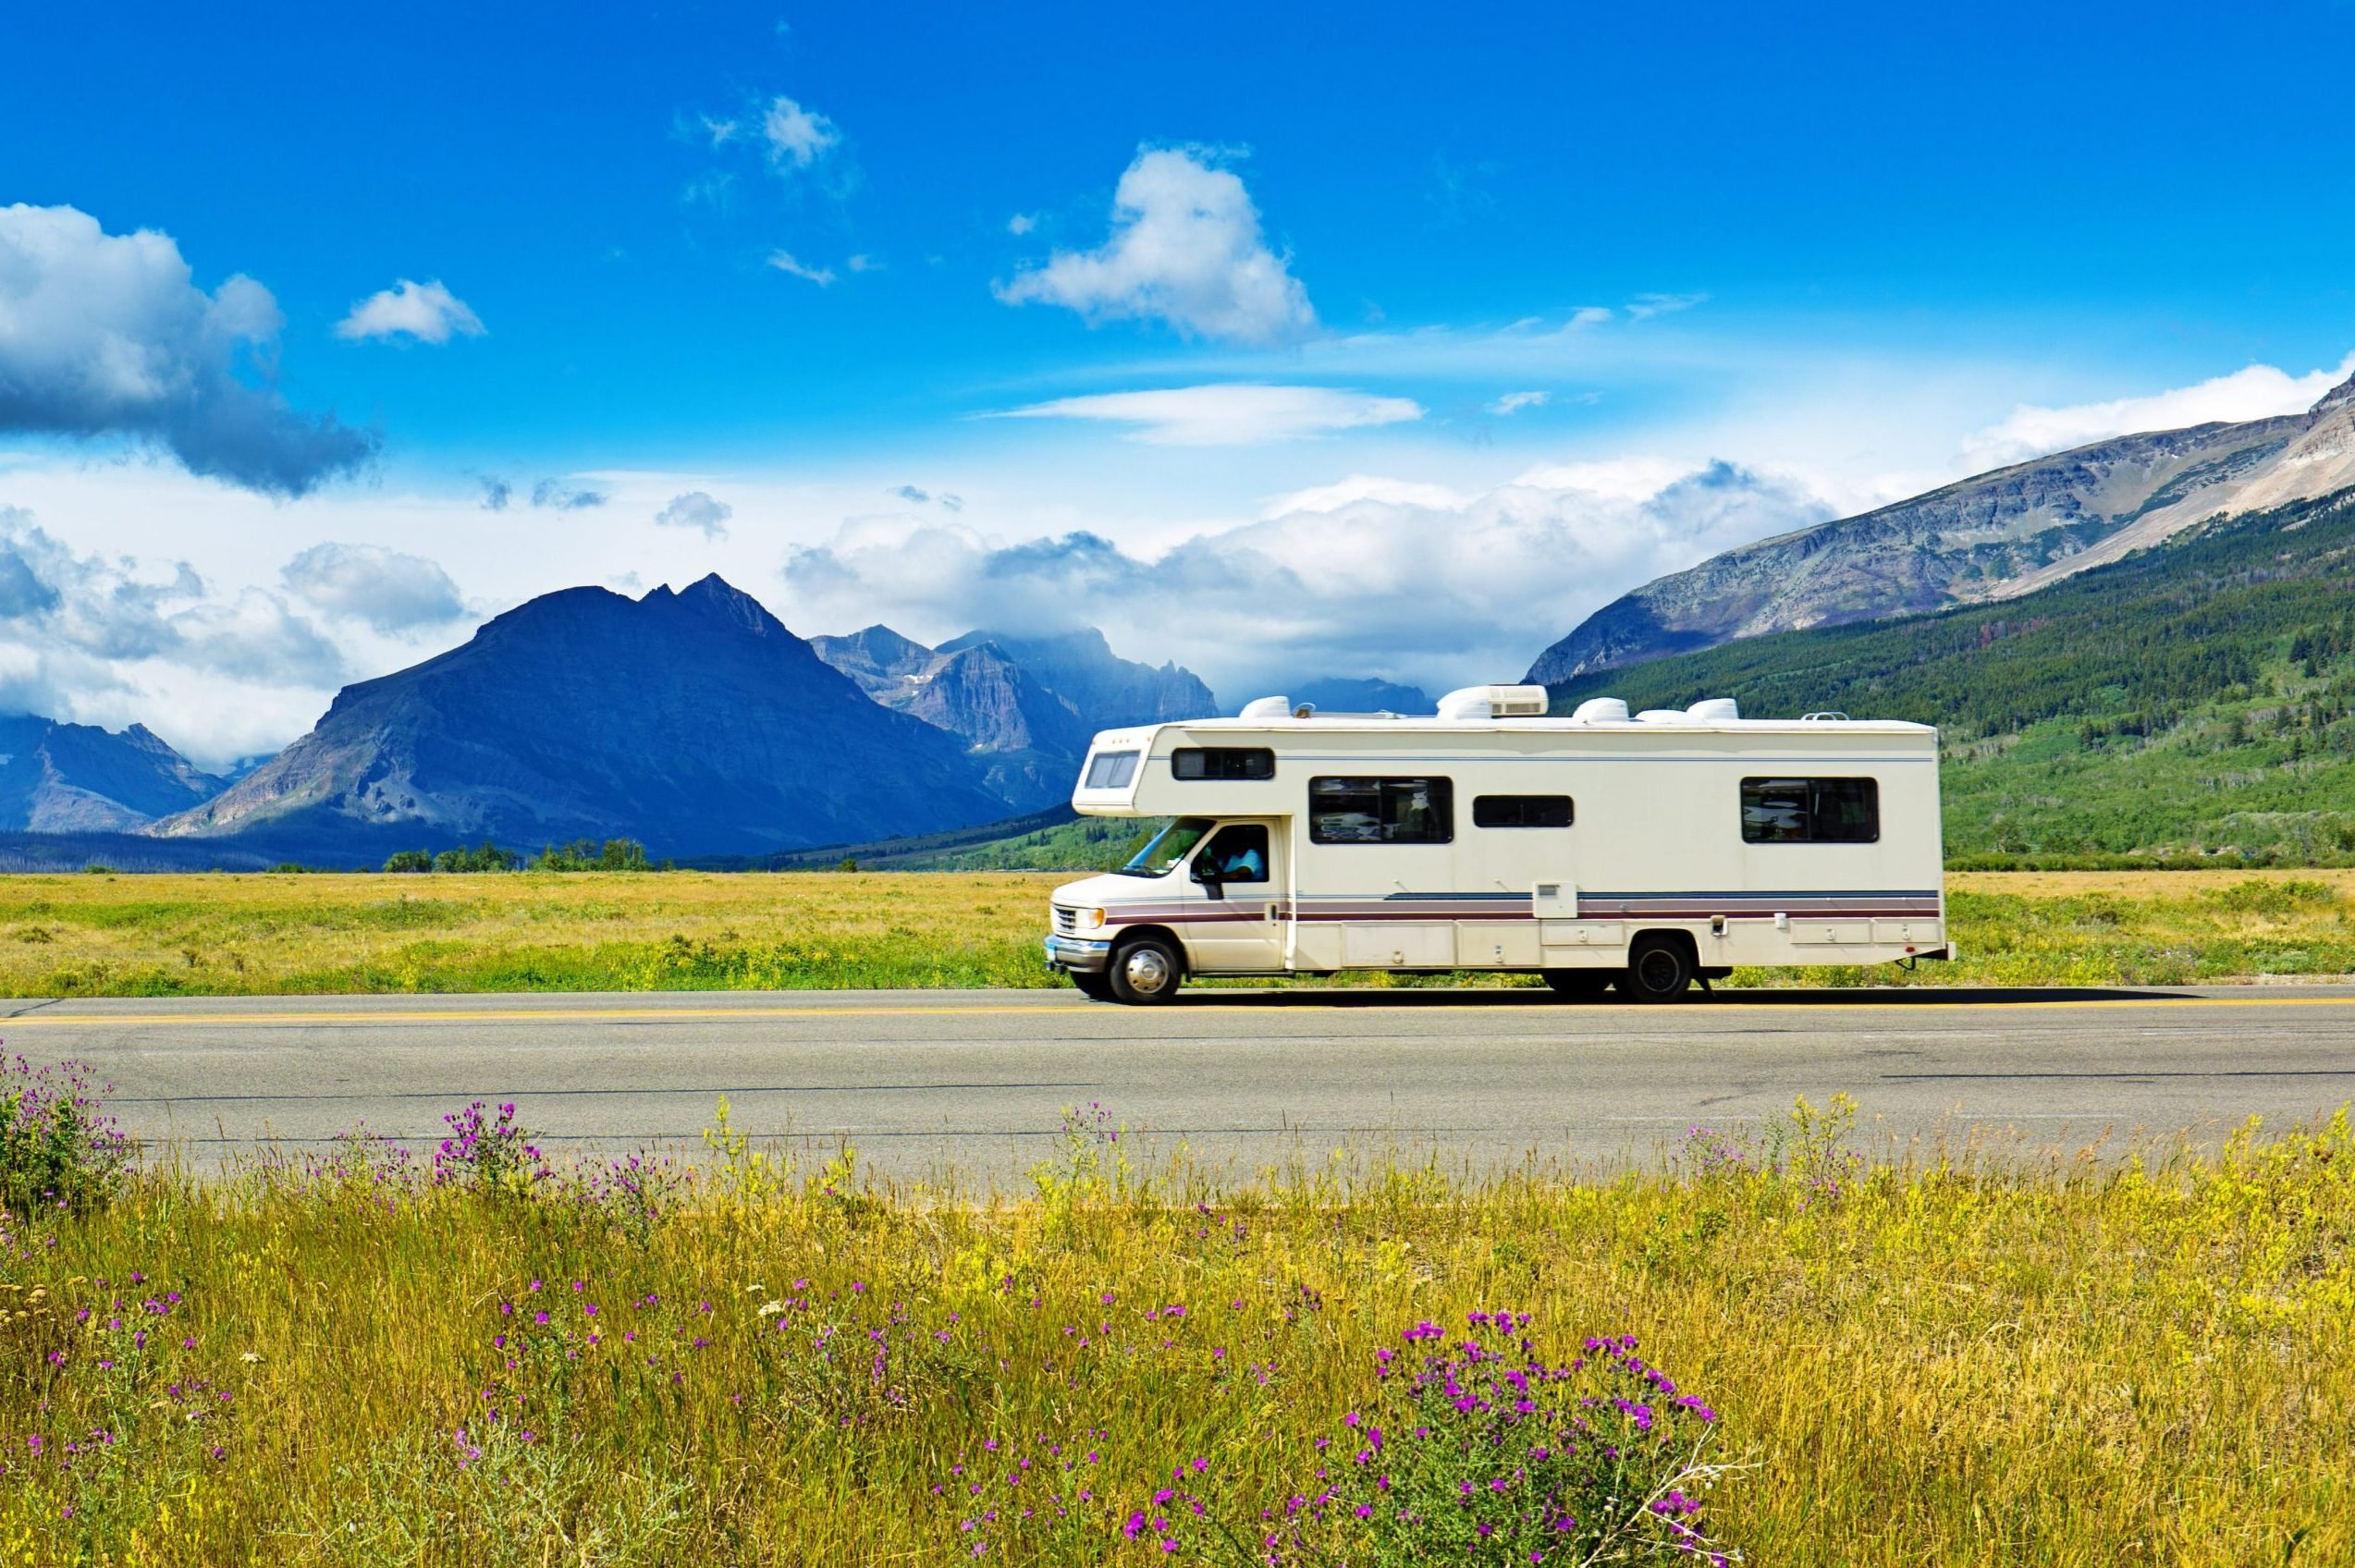 rv on the road among a beautiful landscape with mountains in the background